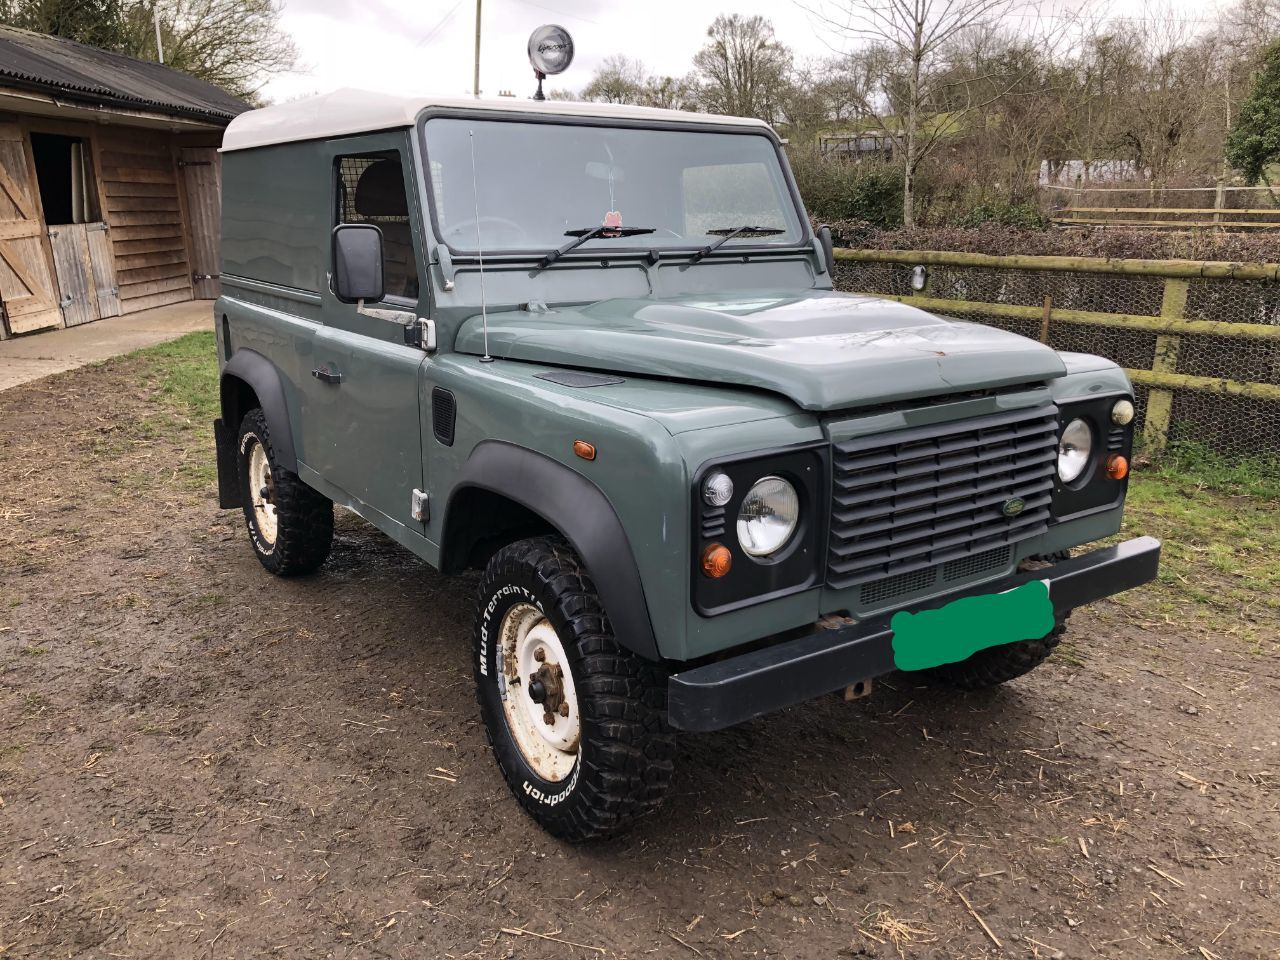 Land Rover Defender 2.4 Hard Top TDCi Four Wheel Drive Diesel Green